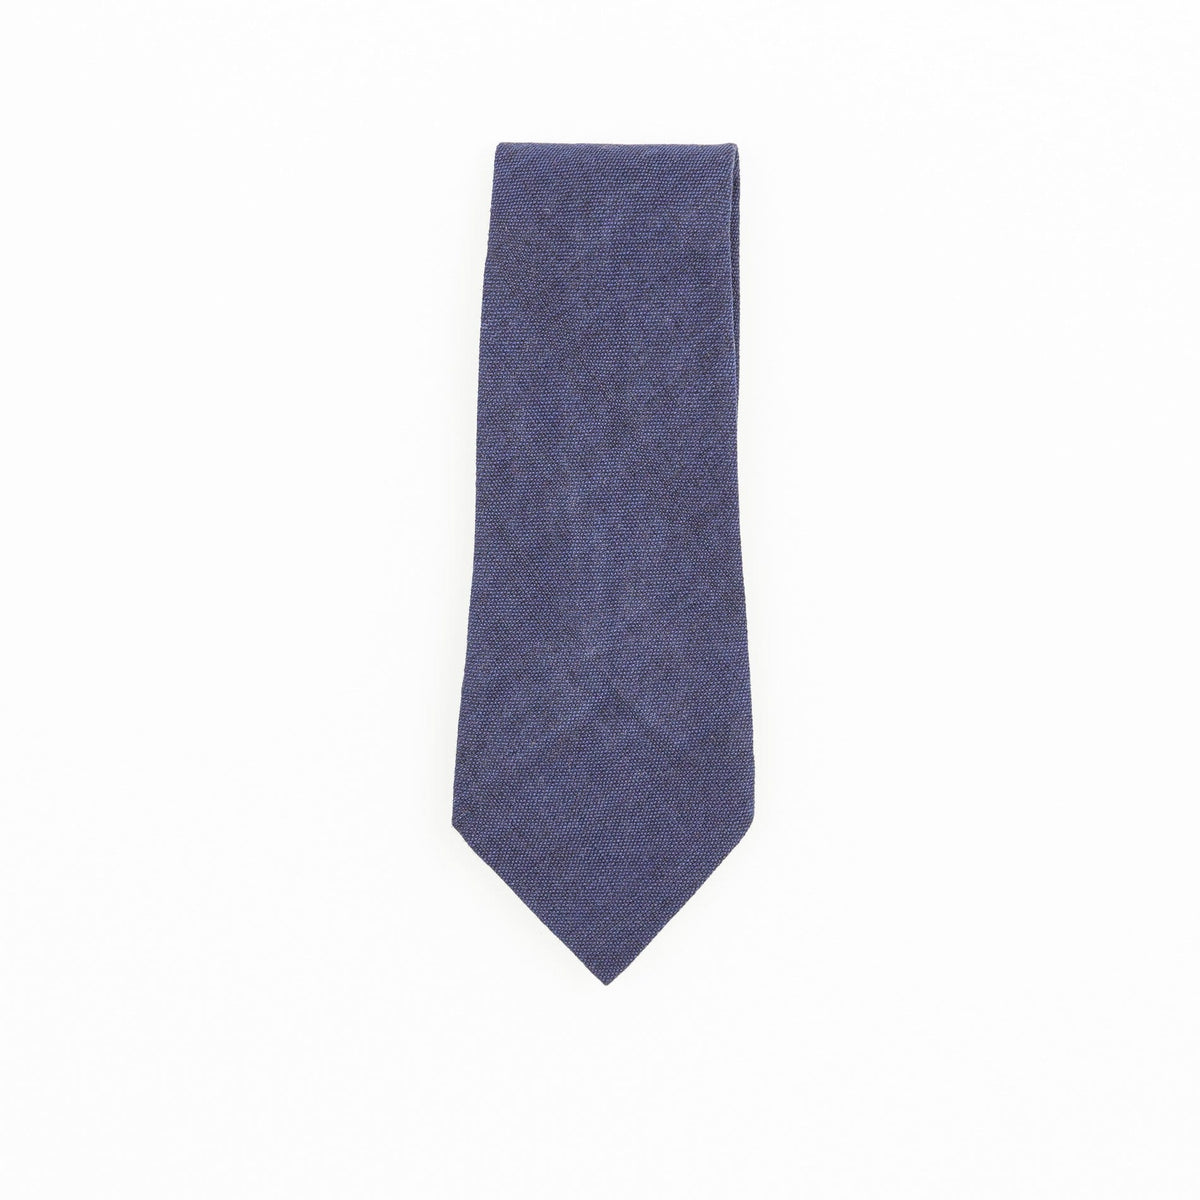 Fair Trade Guatemalan Cotton Tie Navy Blue